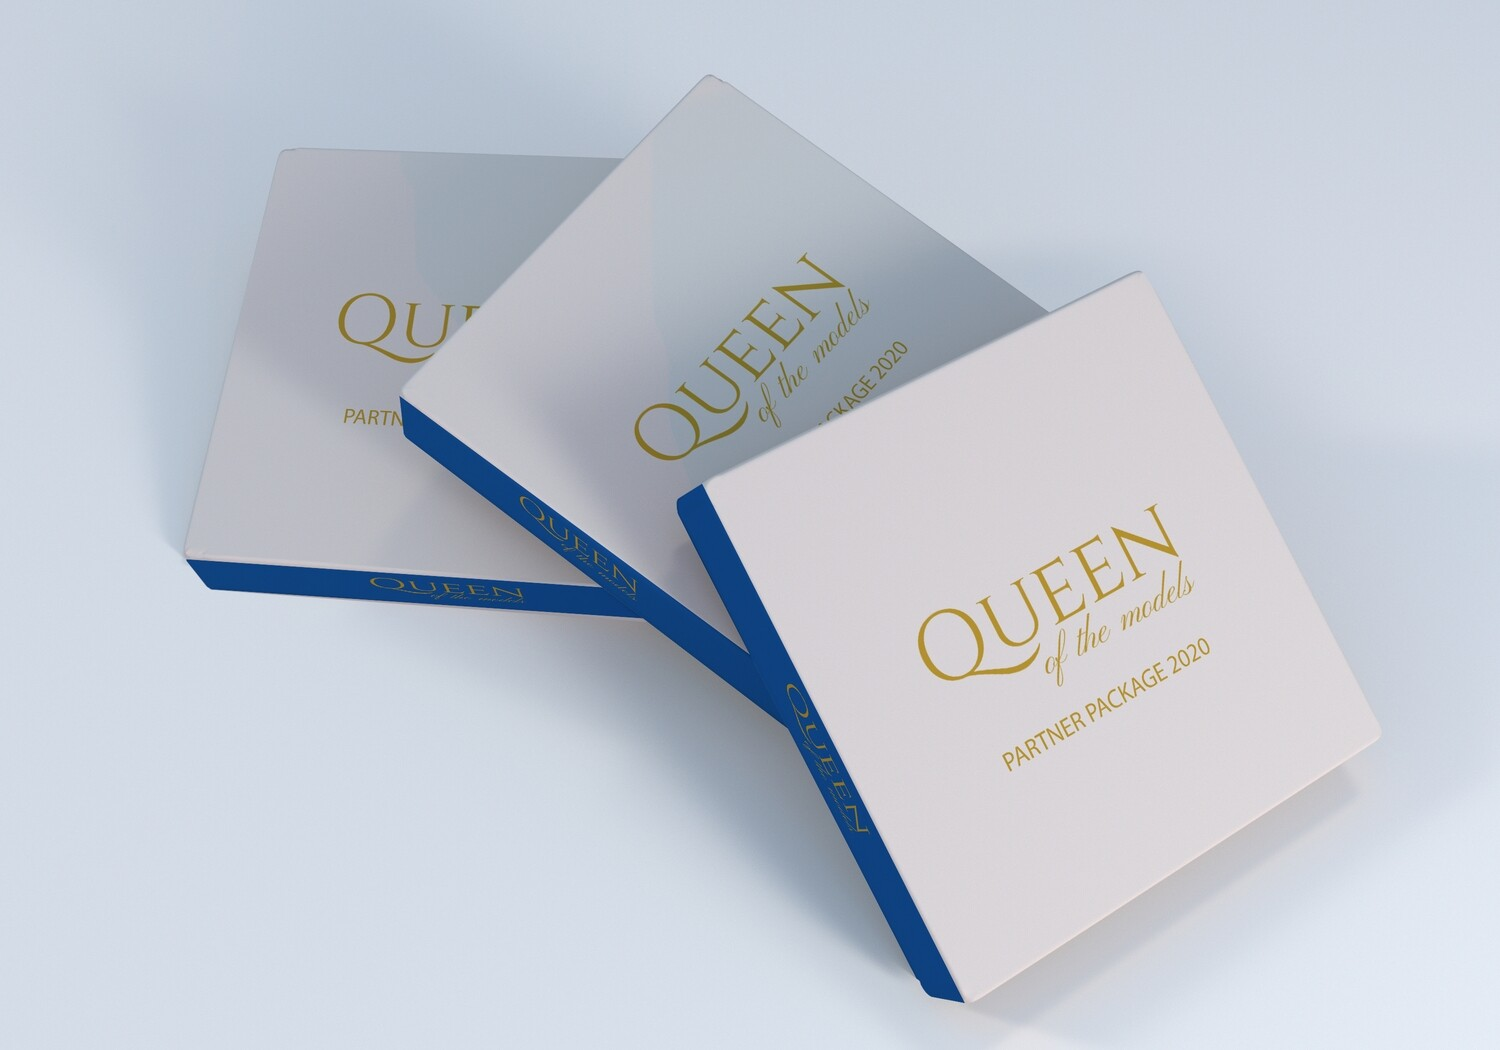 Queen of the models package 200